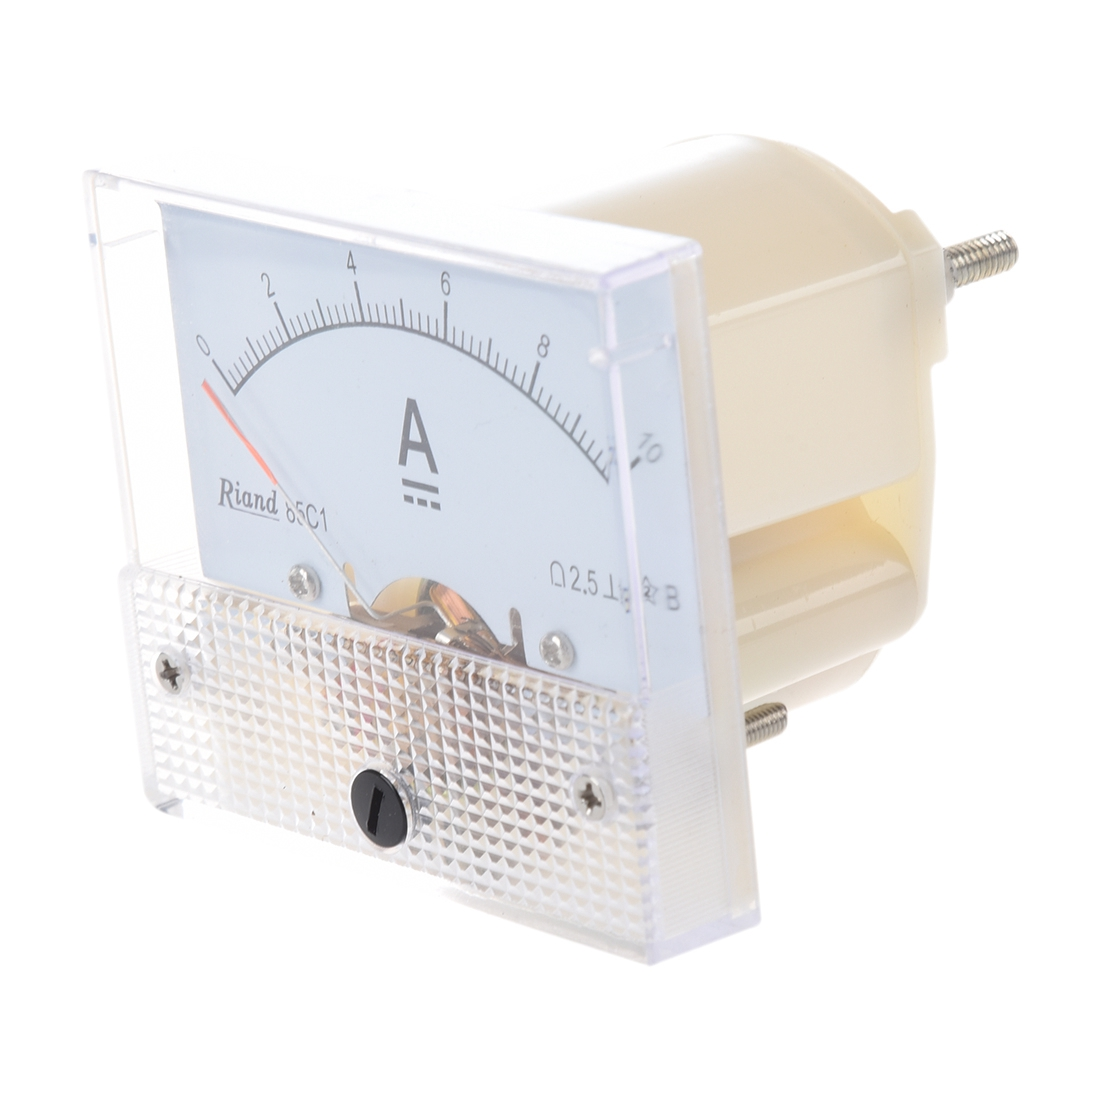 how to read ammeter scale